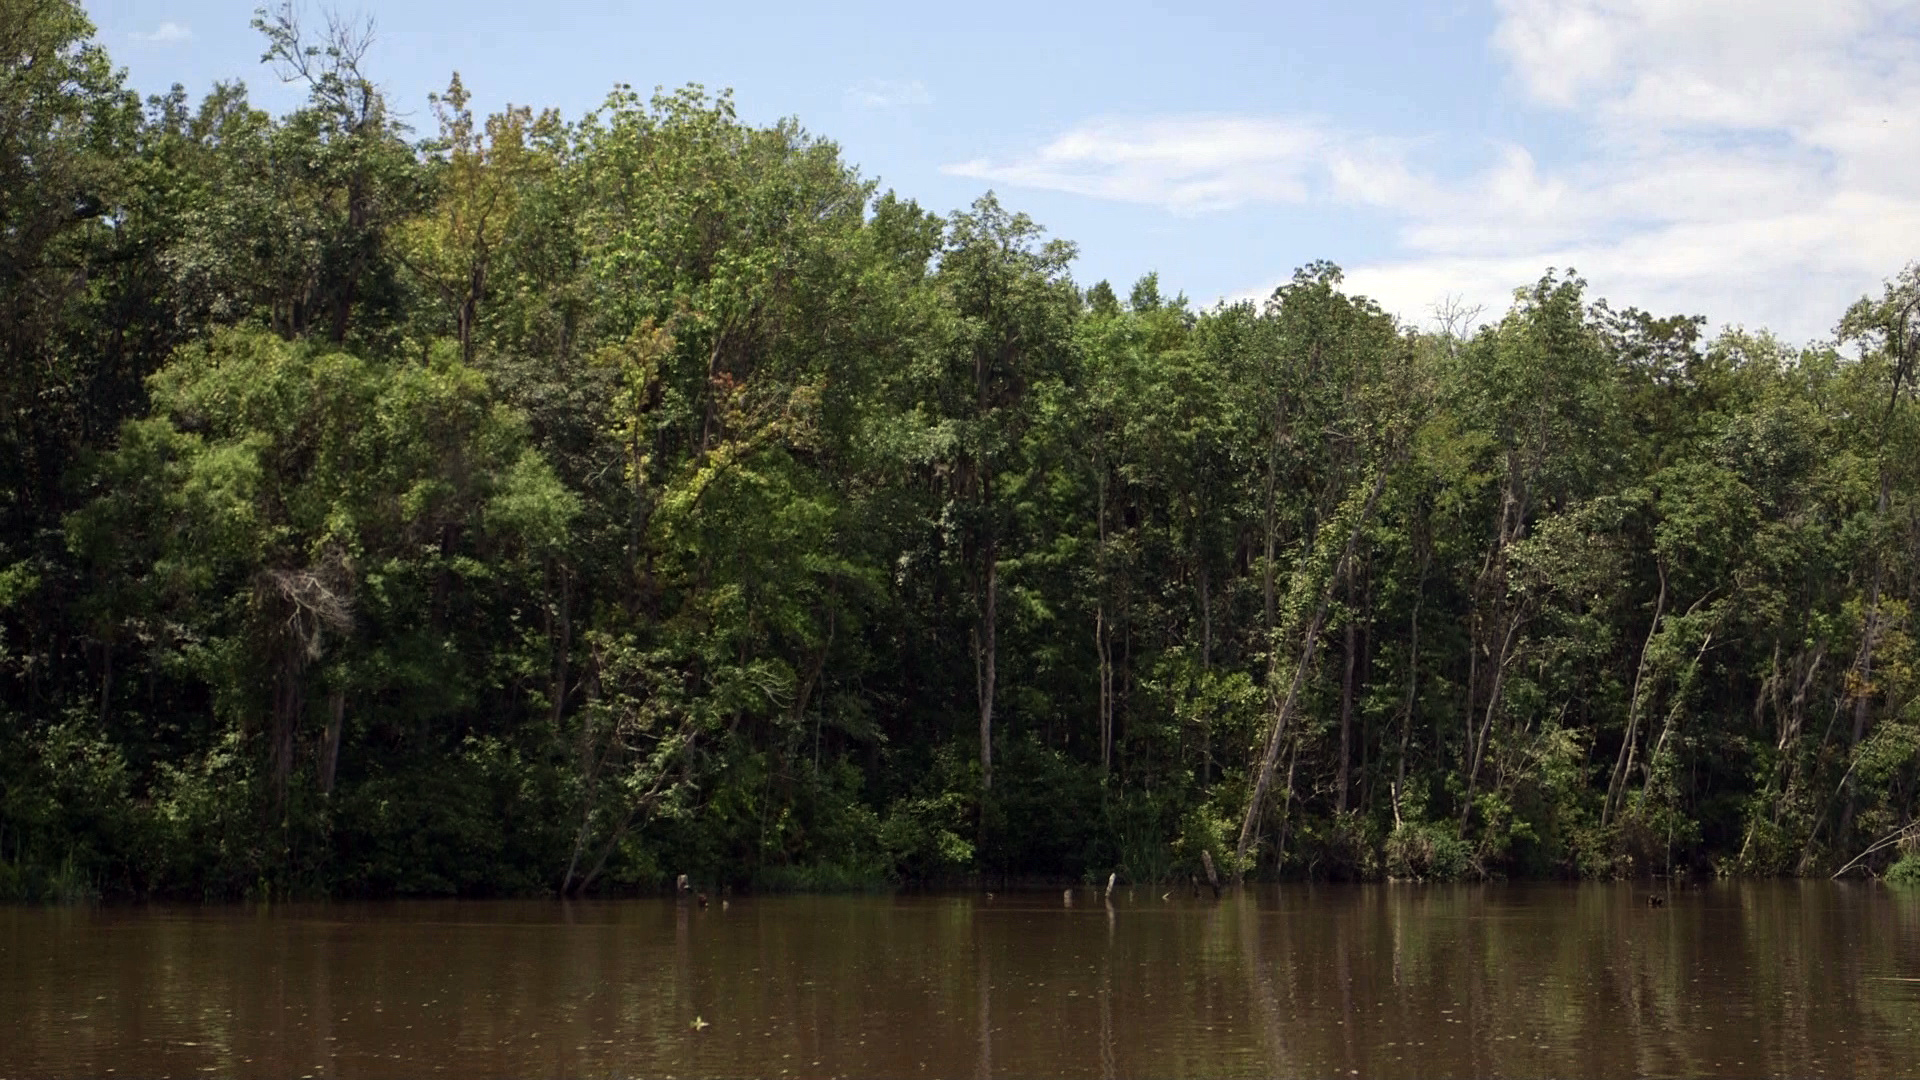 As you move inland along the Altamaha river, freshwater forest replaces the marshes. Photo by Mike Fritz.